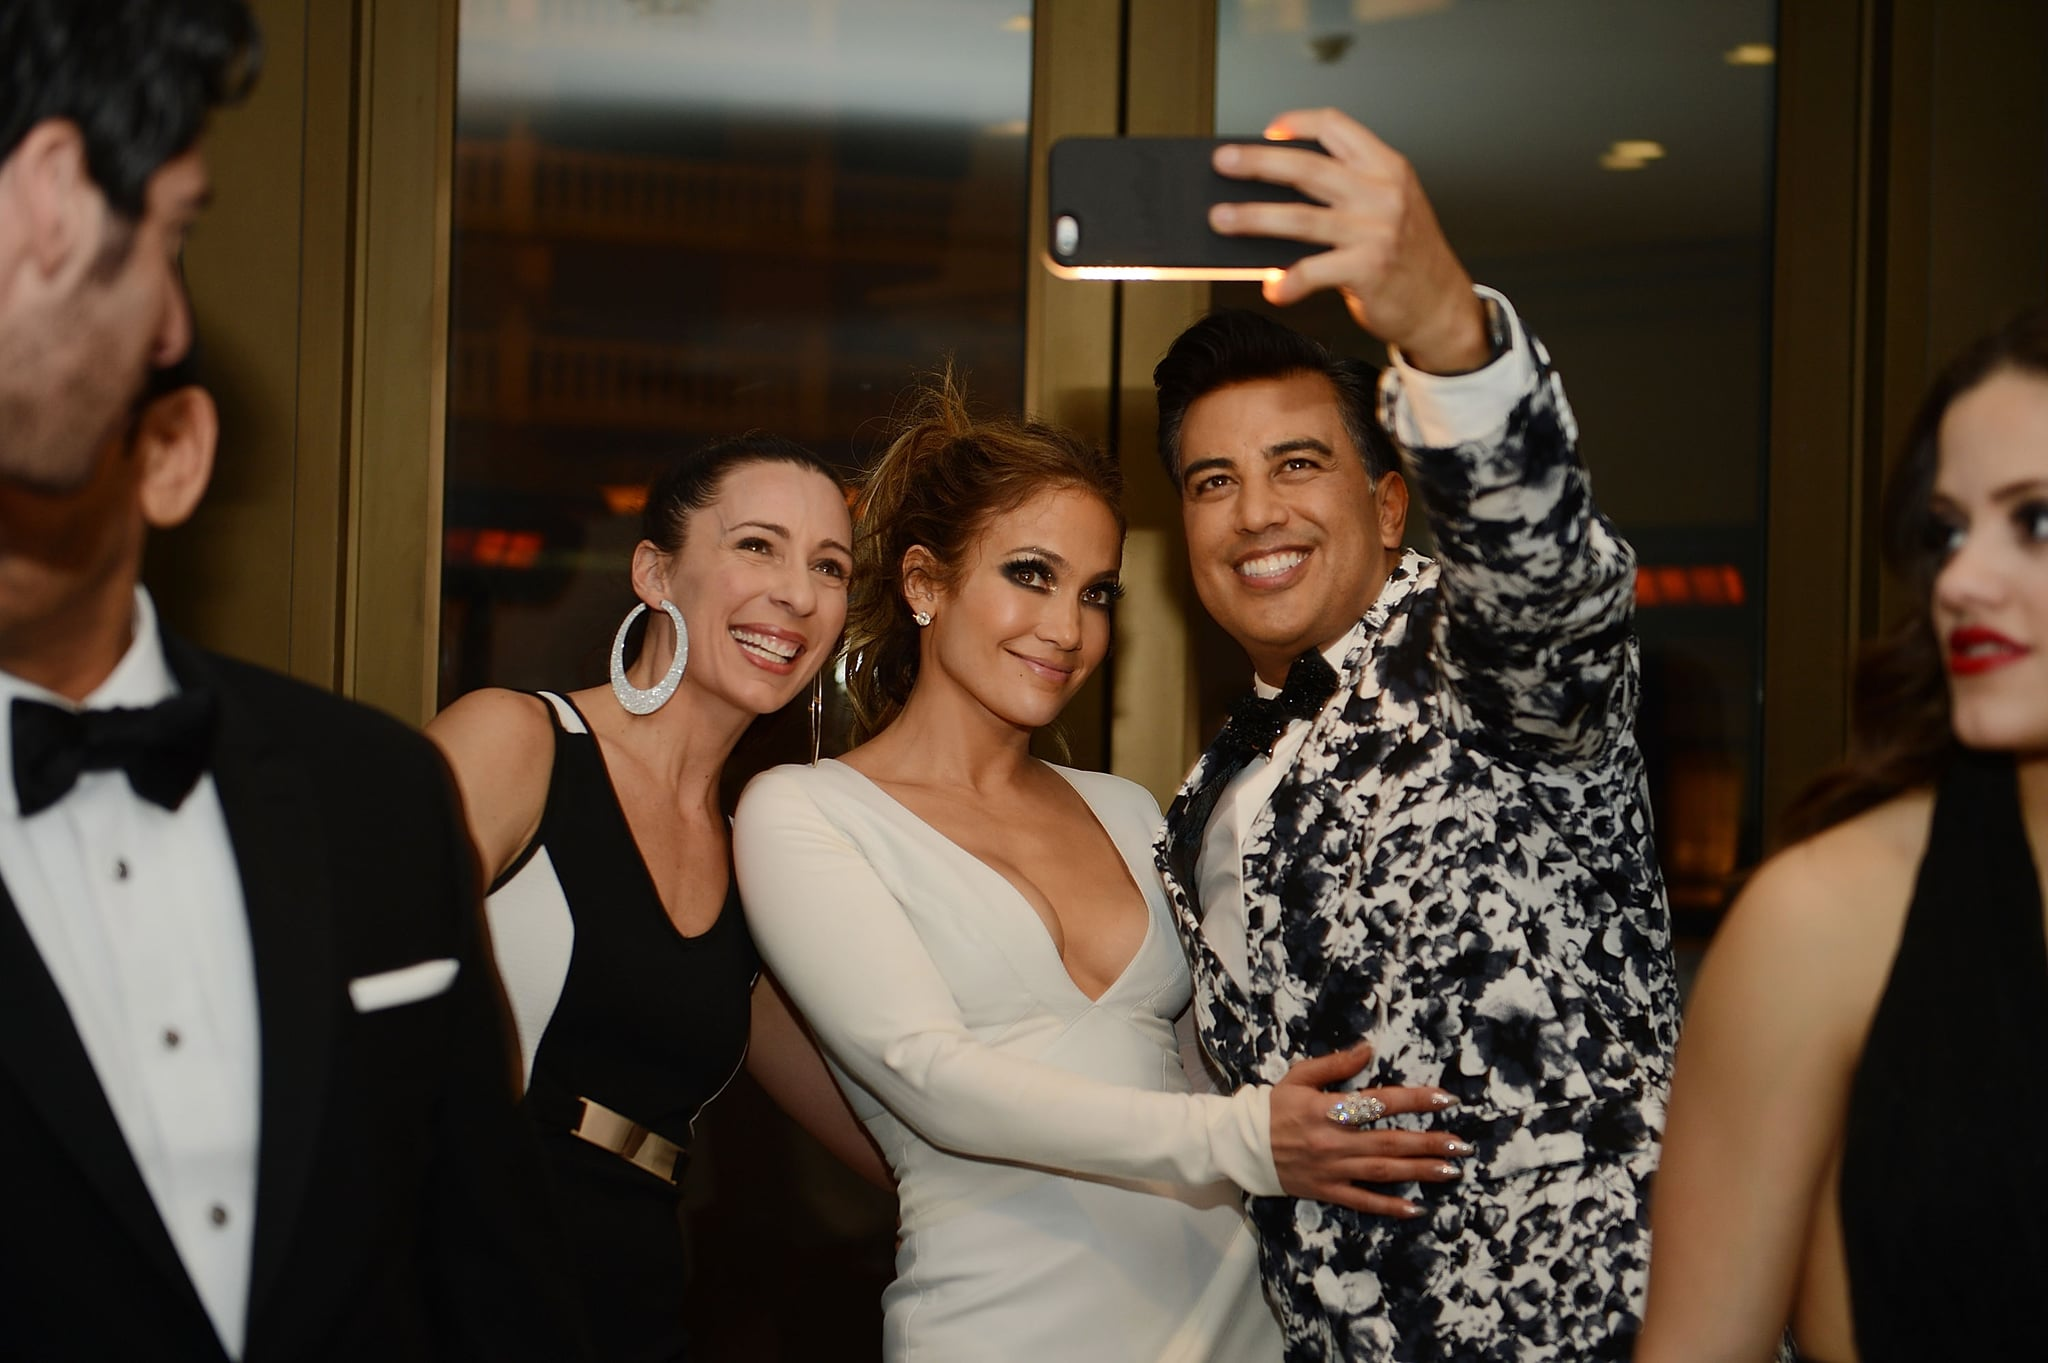 LAS VEGAS, NV - JANUARY 20:  Tabitha Dumo, Jennifer Lopez and Napoleon Dumo attend the after party for the debut of the new headlining residency show JENNIFER LOPEZ: ALL I HAVE at Mr Chow Caesars Palace on January 20, 2016 in Las Vegas, Nevada.  (Photo by Denise Truscello/WireImage)